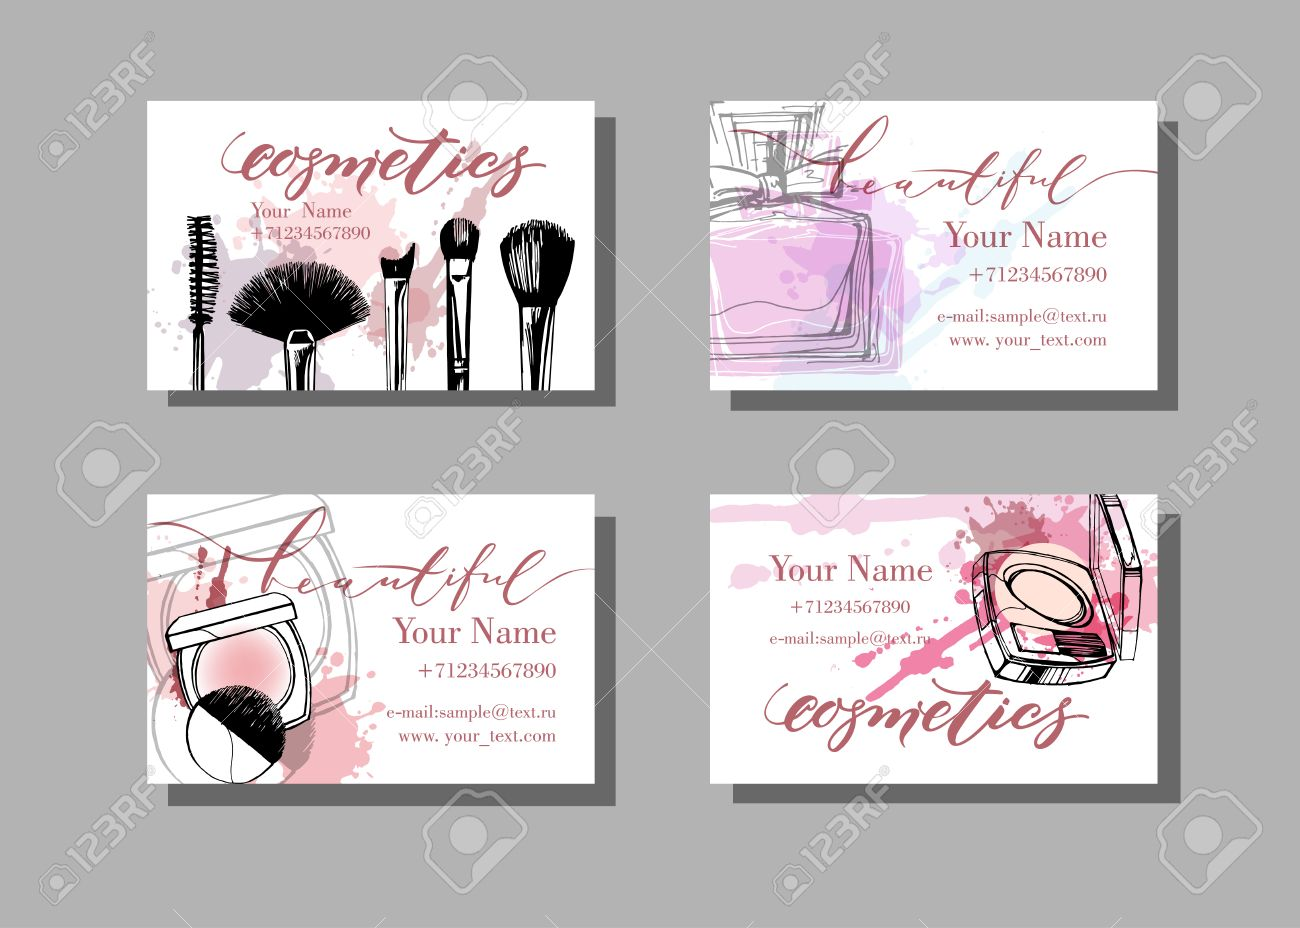 Makeup artist business card image collections free business cards makeup artist business card vector template with makeup items makeup artist business card vector template with magicingreecefo Images